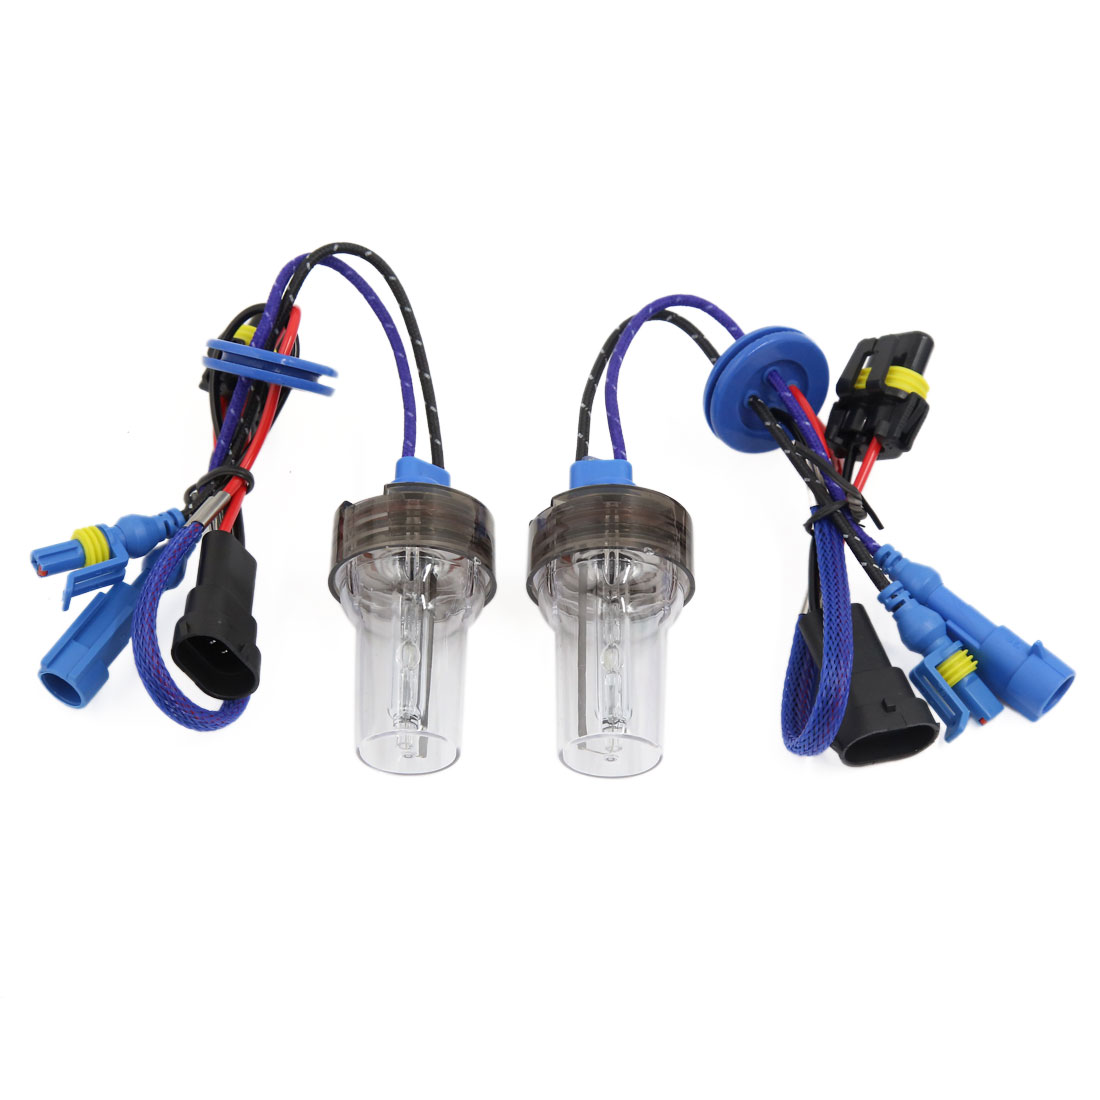 2PCS DC 12V 5500K 35W-45W Auto Car H11 HID Xenon Headlight Light Lamp Bulbs